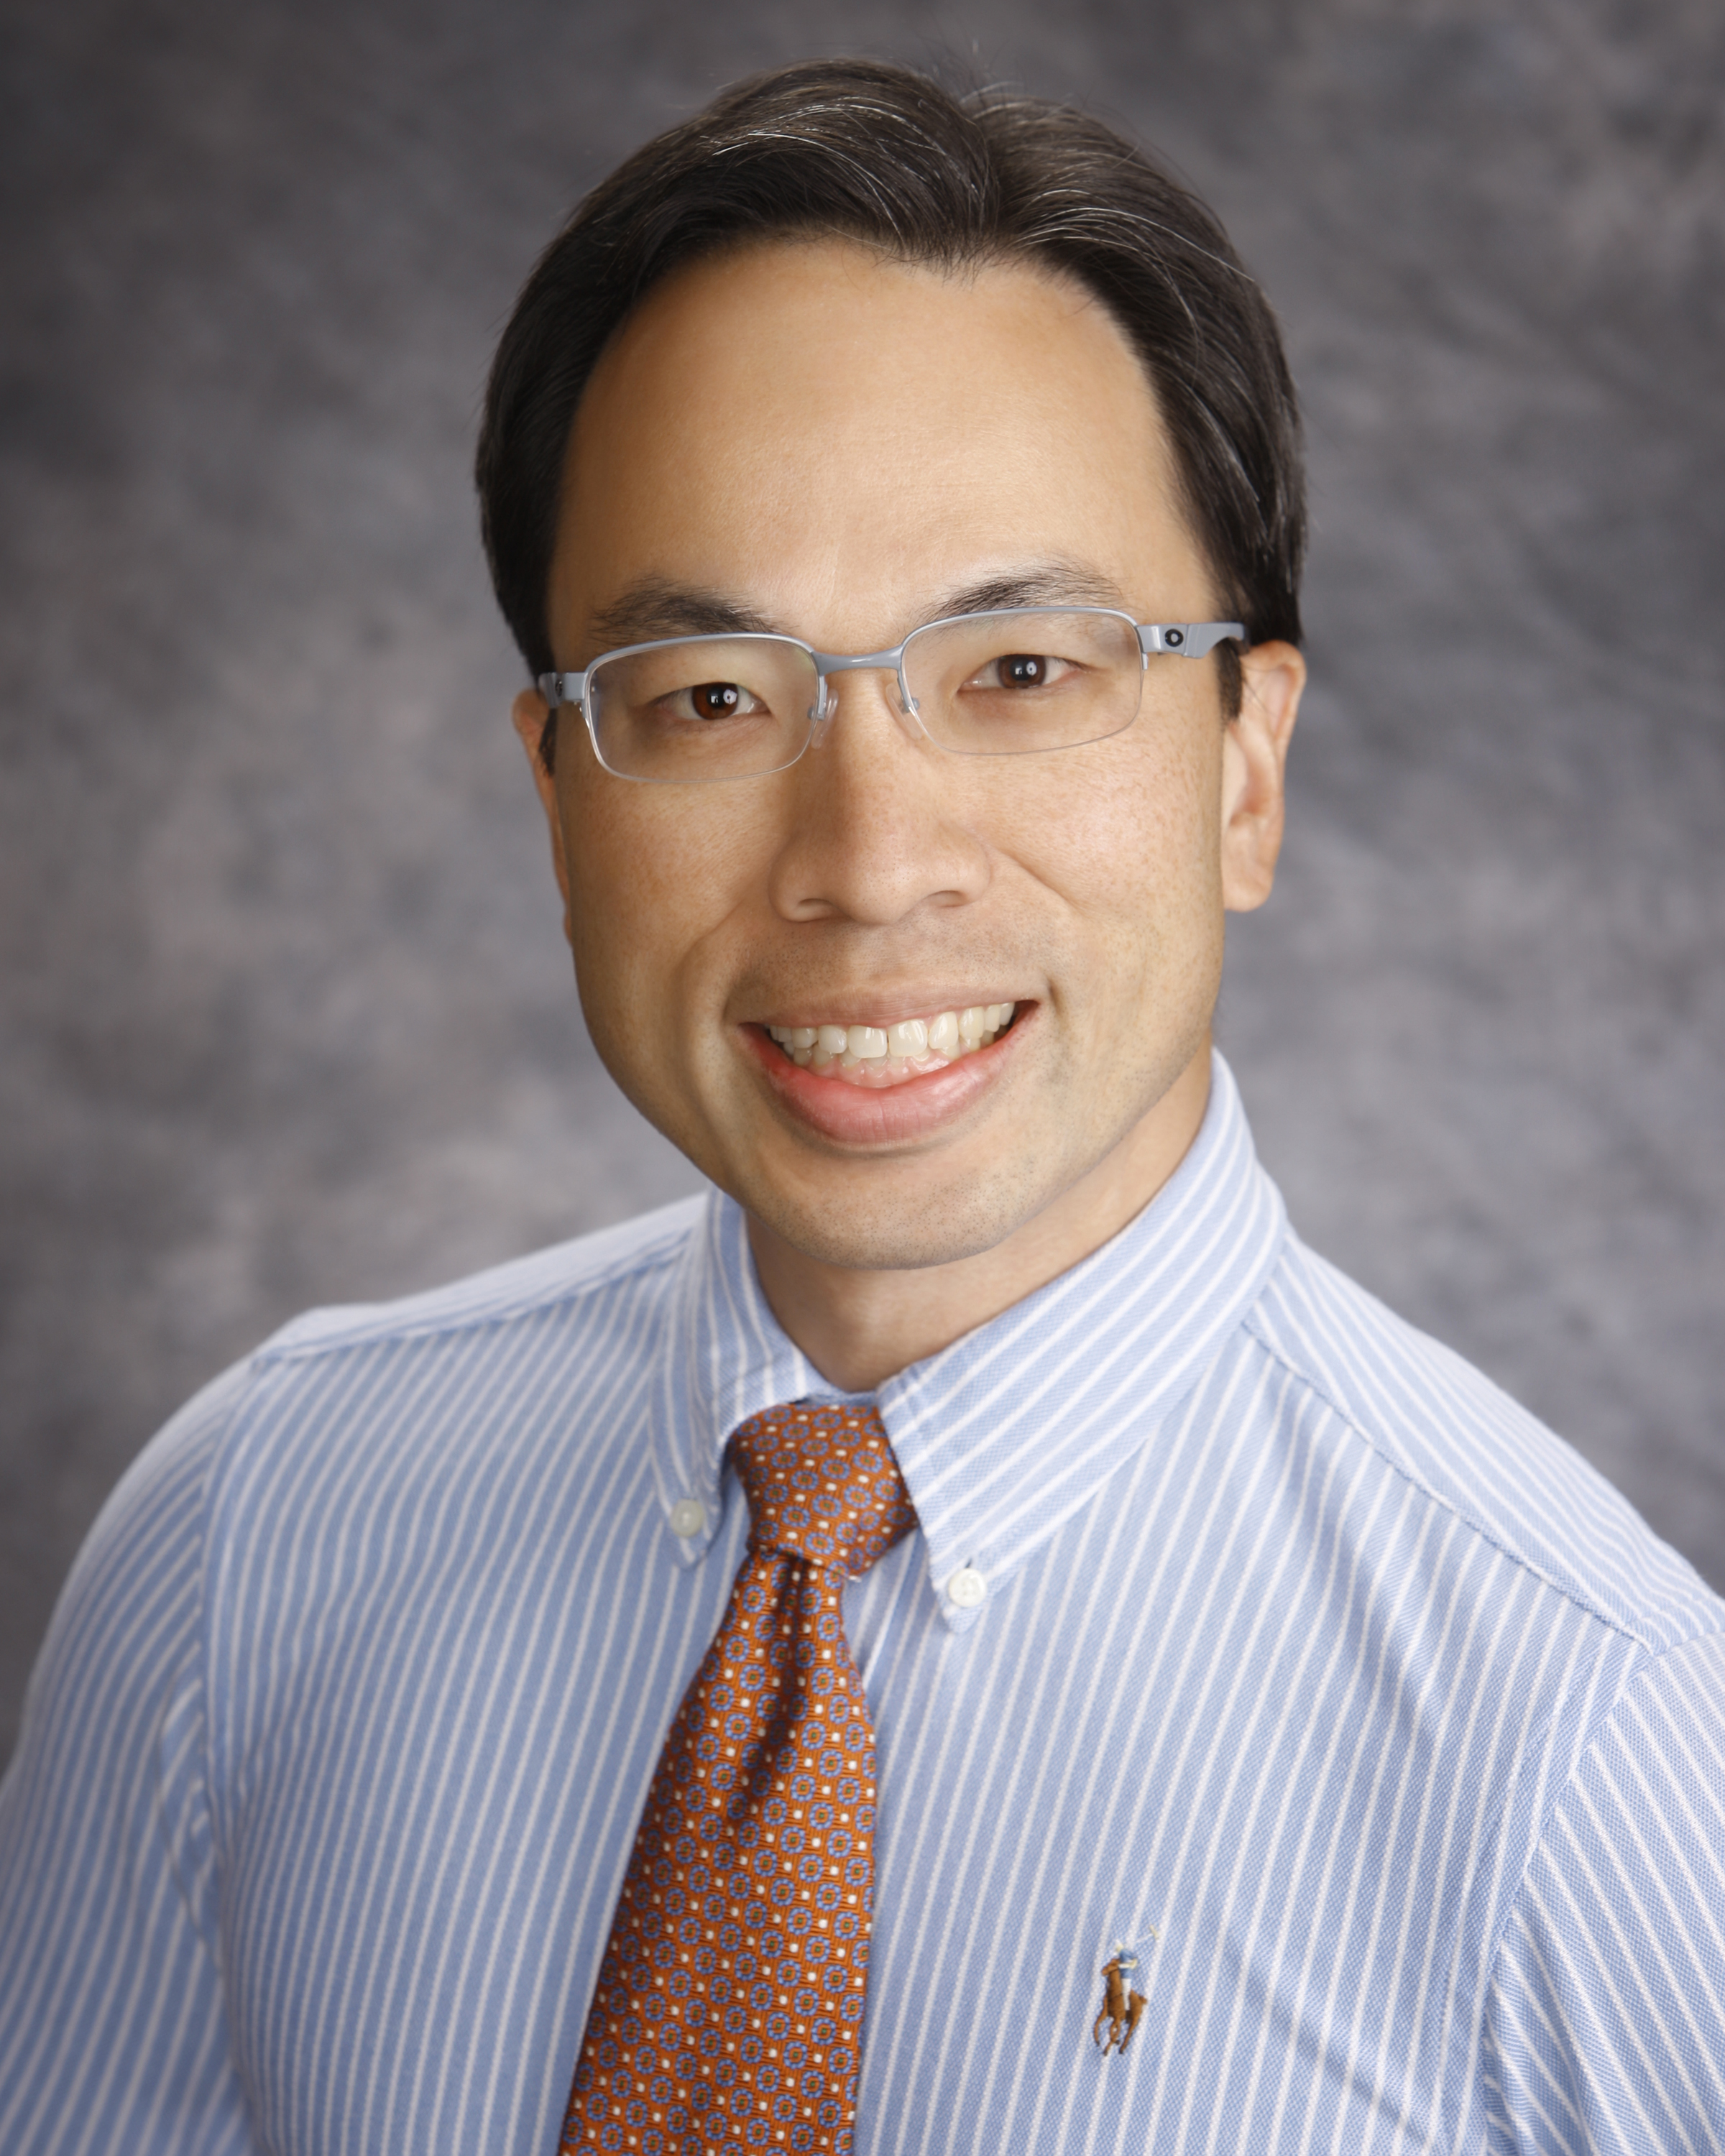 Steven M. Young, MD, FACS